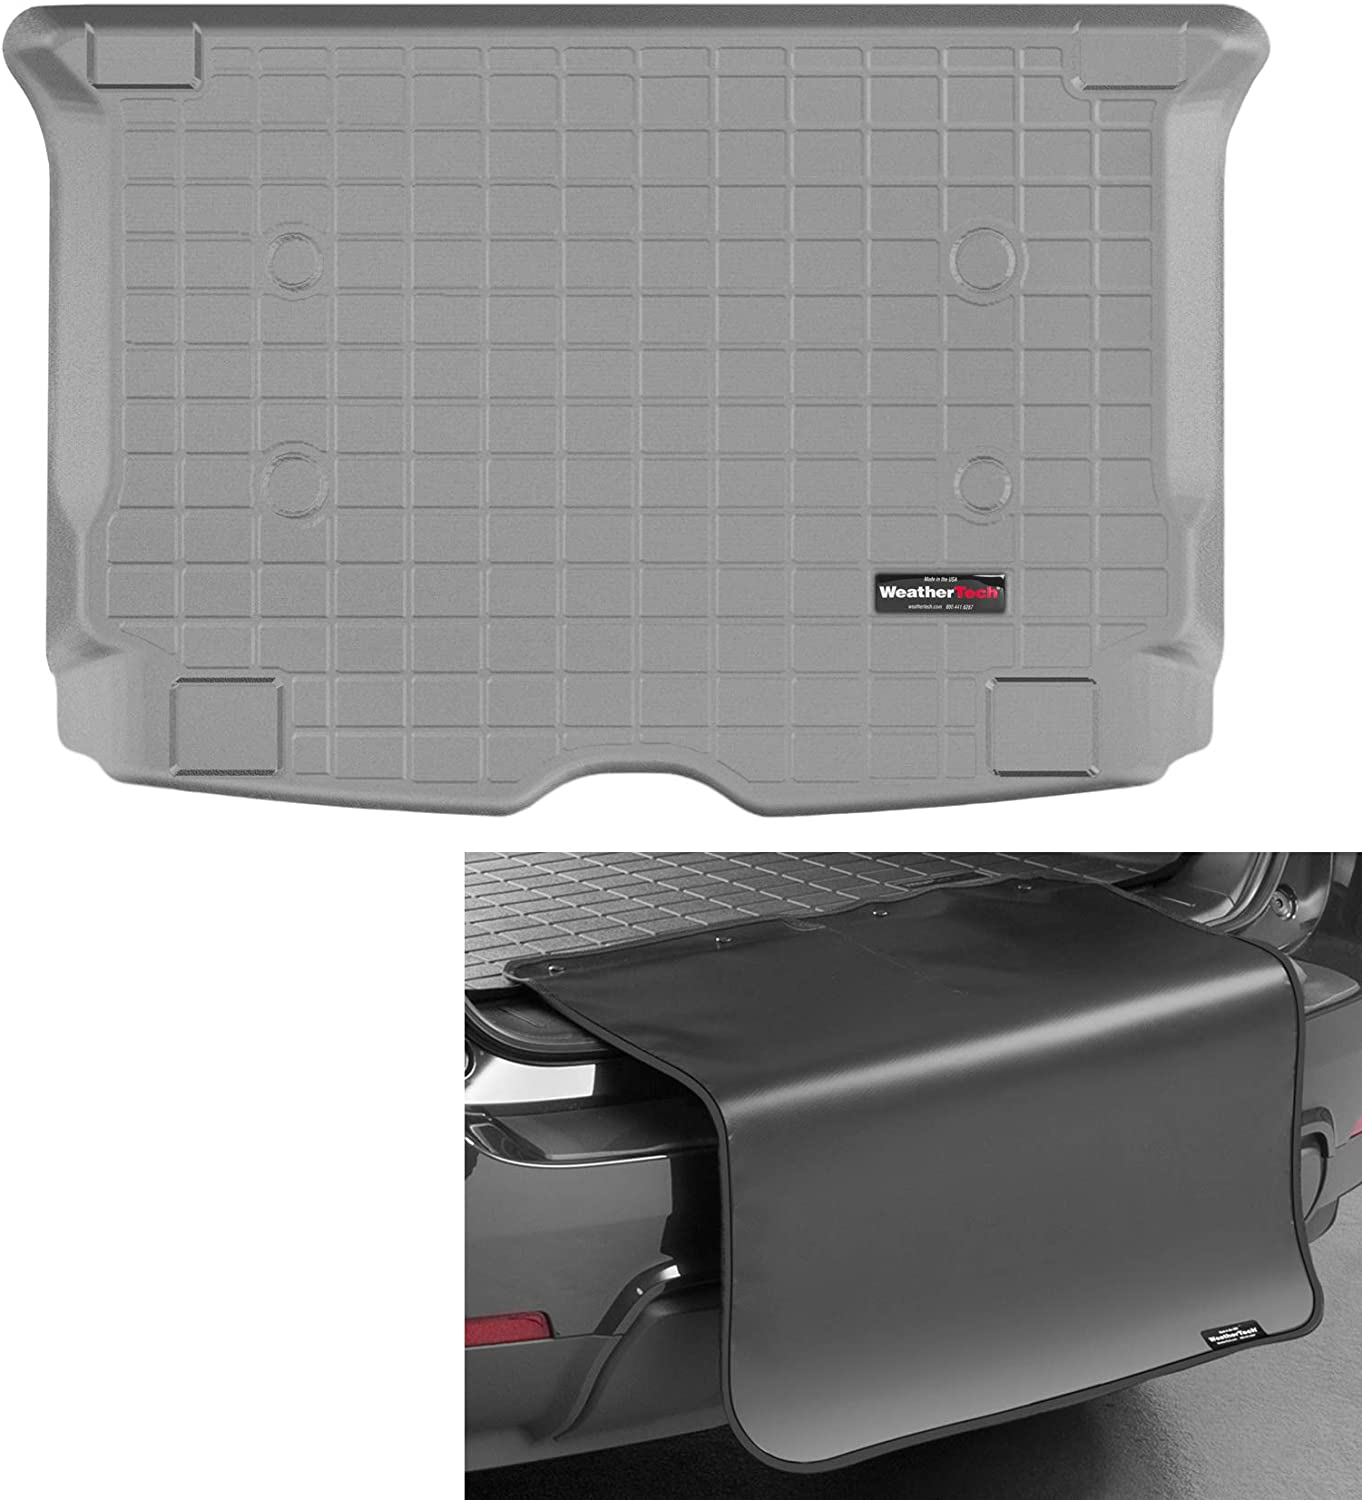 WeatherTech Max 74% OFF Cargo Trunk Recommended Liner with Bumper for i3 - BMW Protector